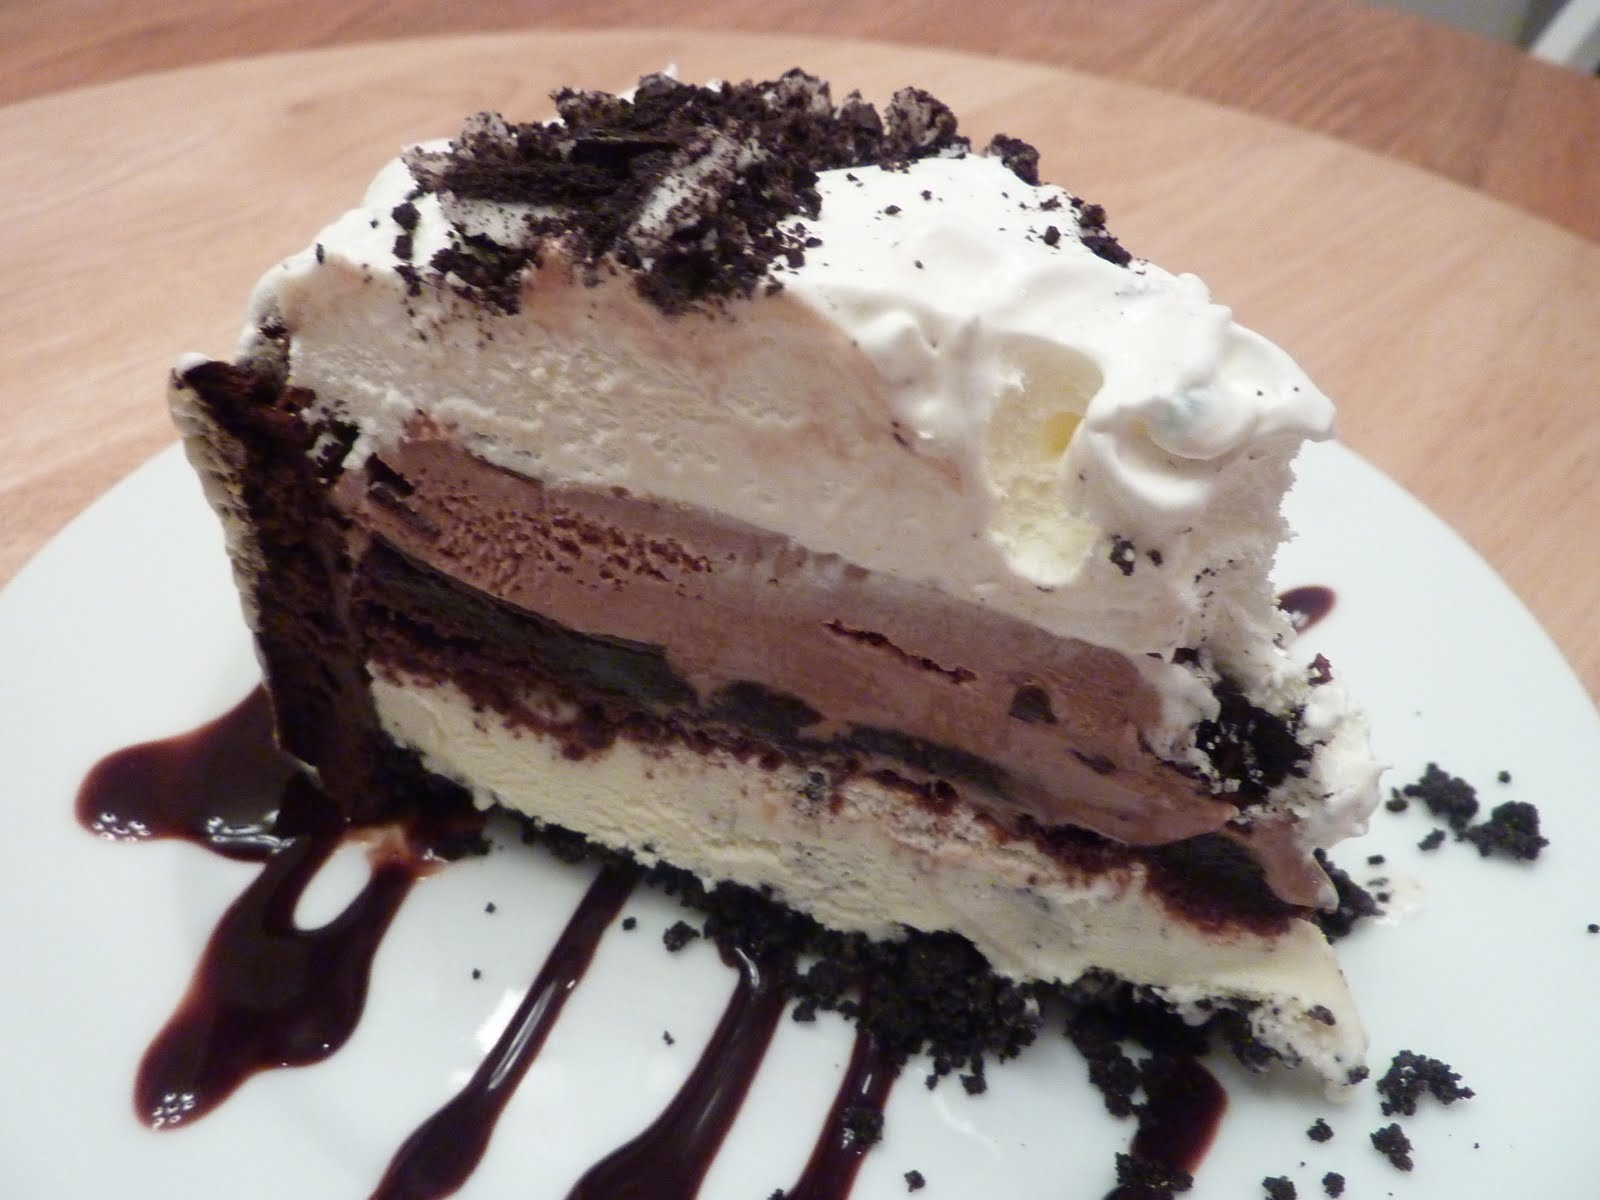 Kimmy s Kitchen: Layered Brownie Ice Cream Cake